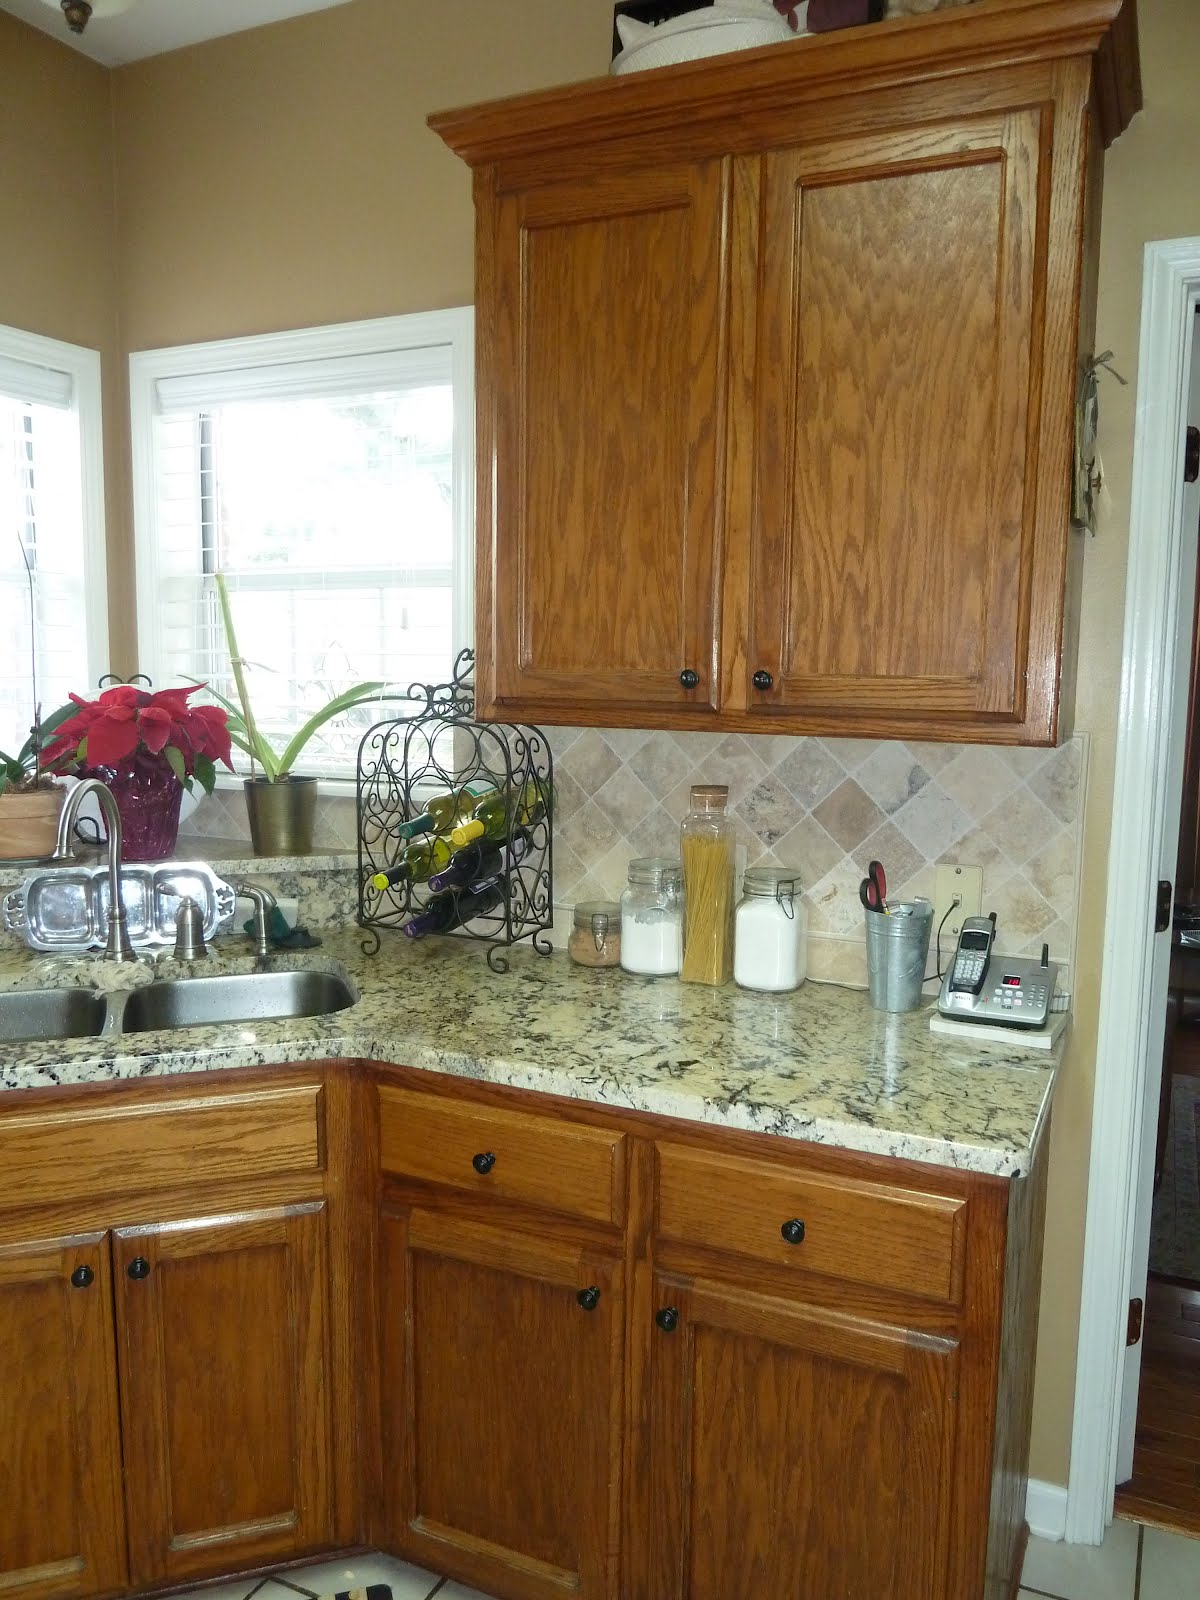 Ways To Redo Kitchen Cabinets Beaucoup Joie De Vivre Kitchen Redo Update